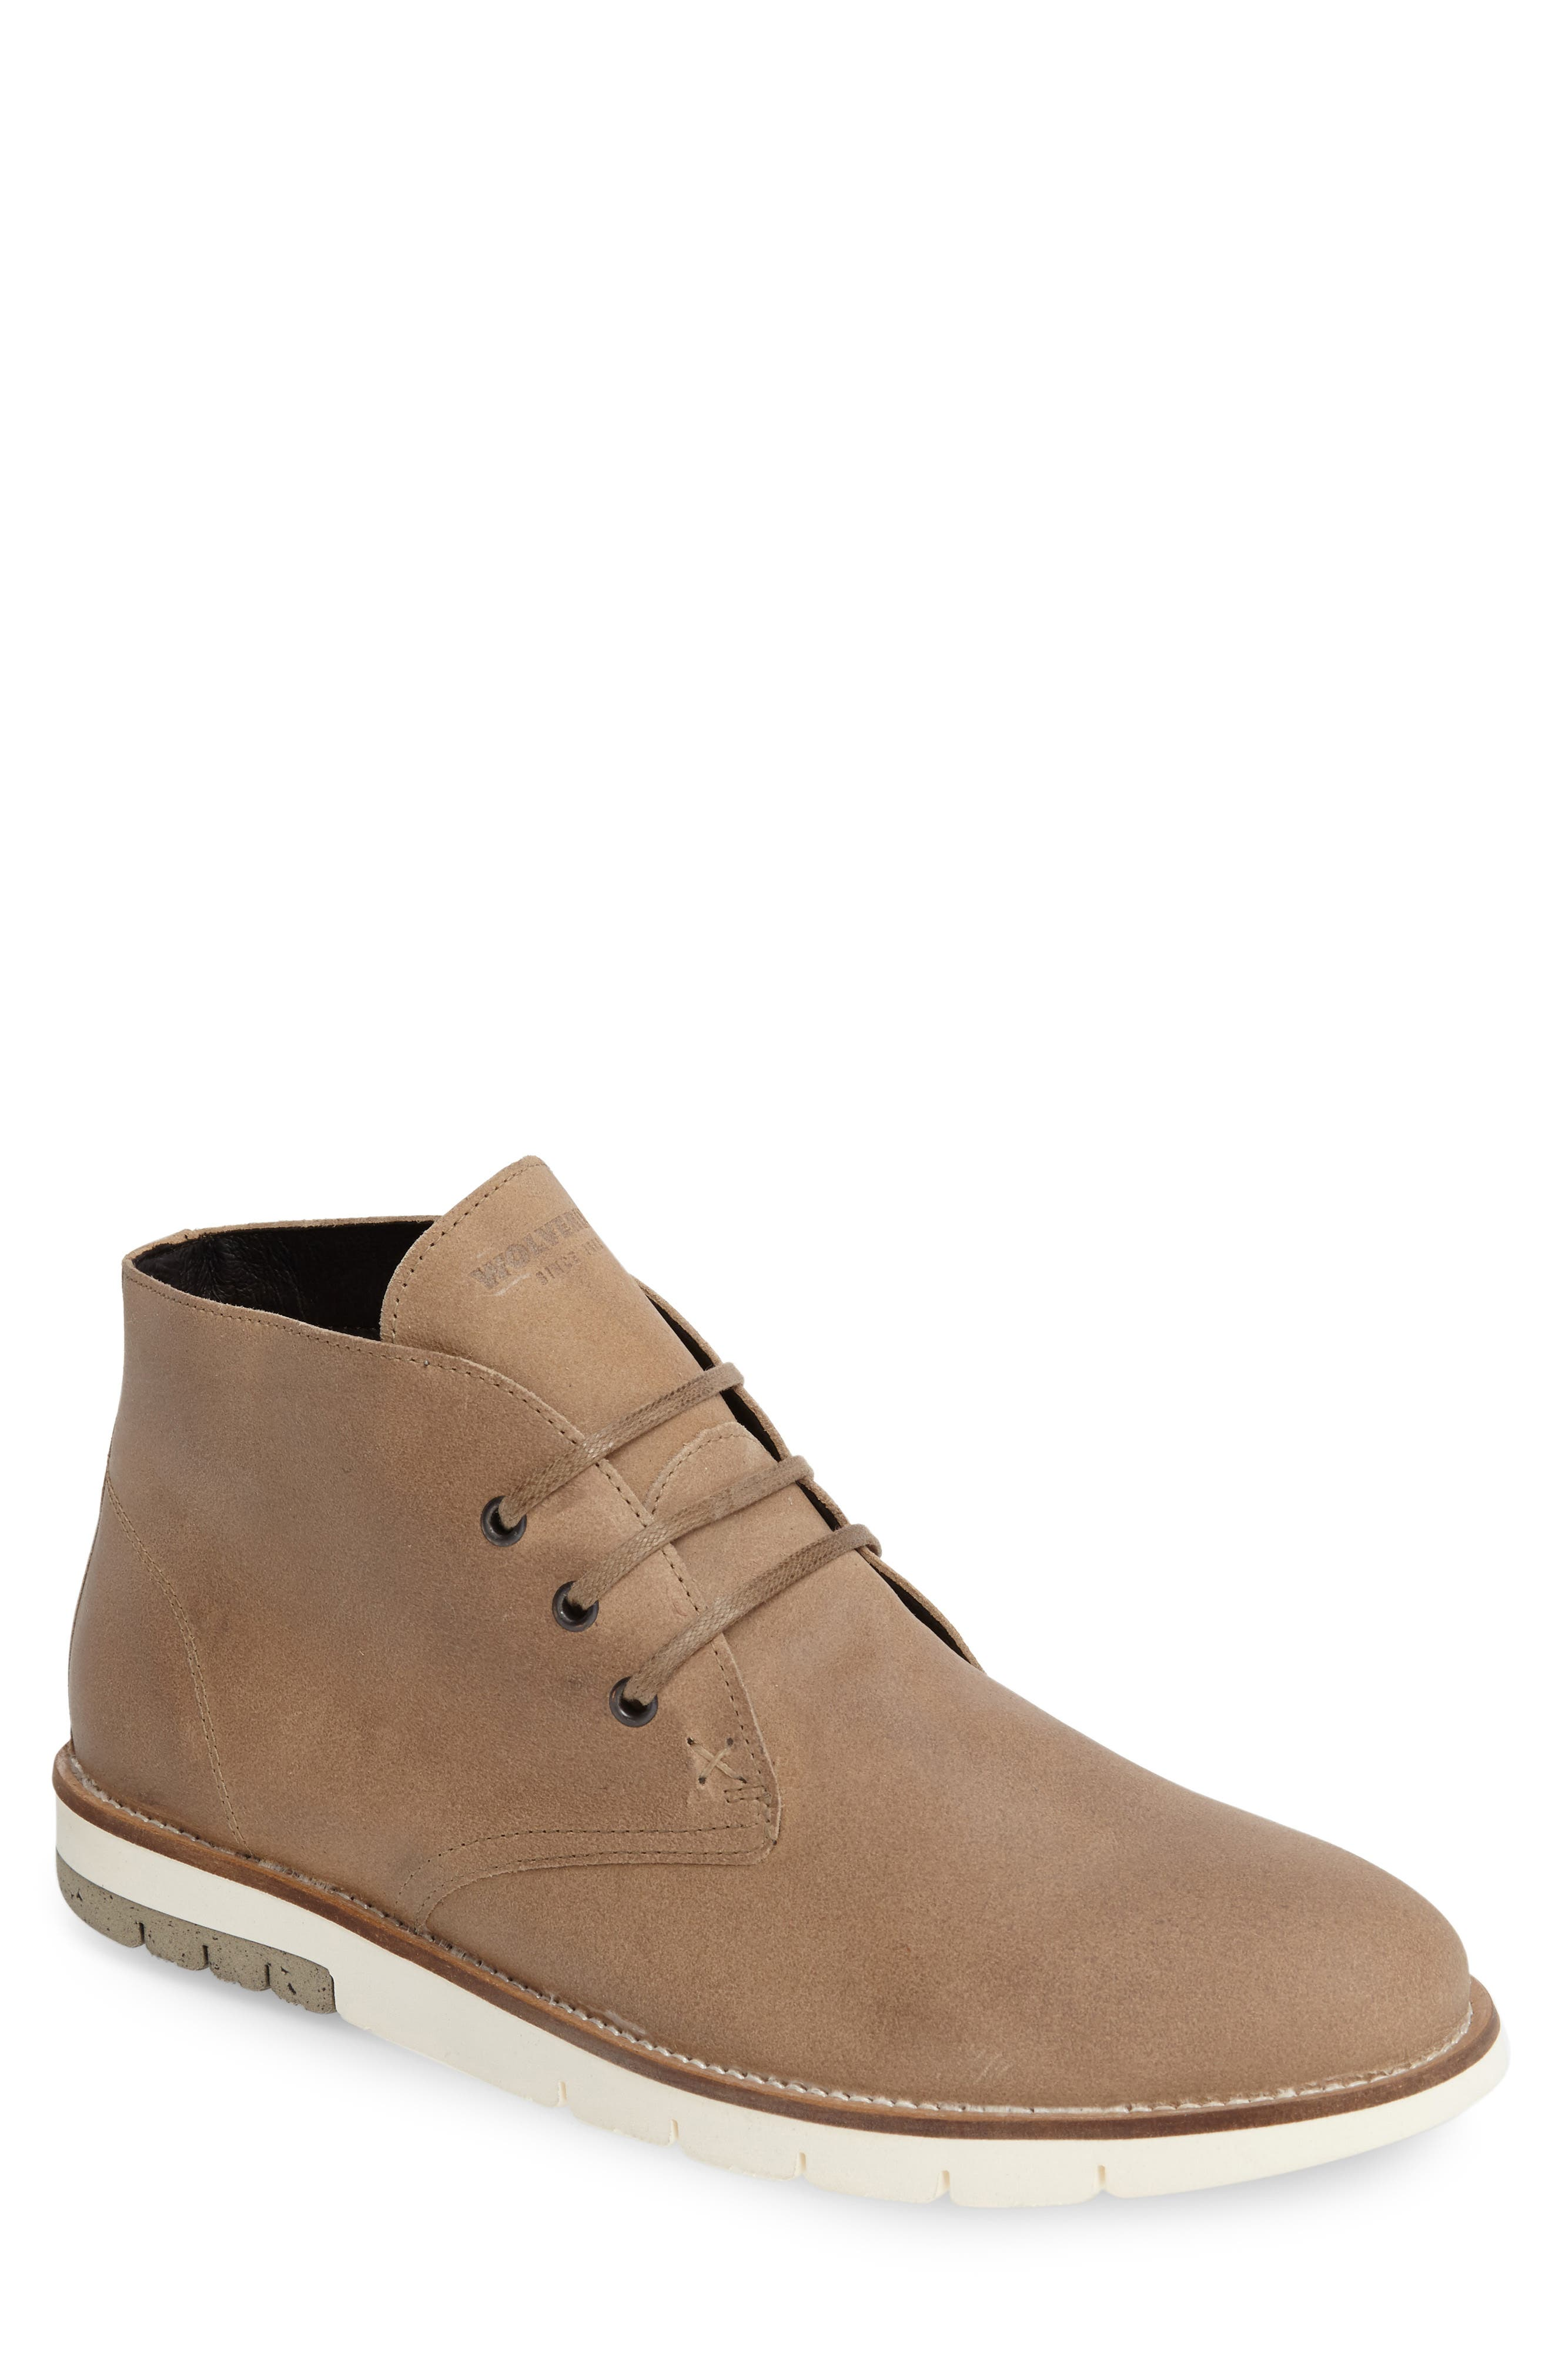 Gibson Chukka Boot,                         Main,                         color, 200